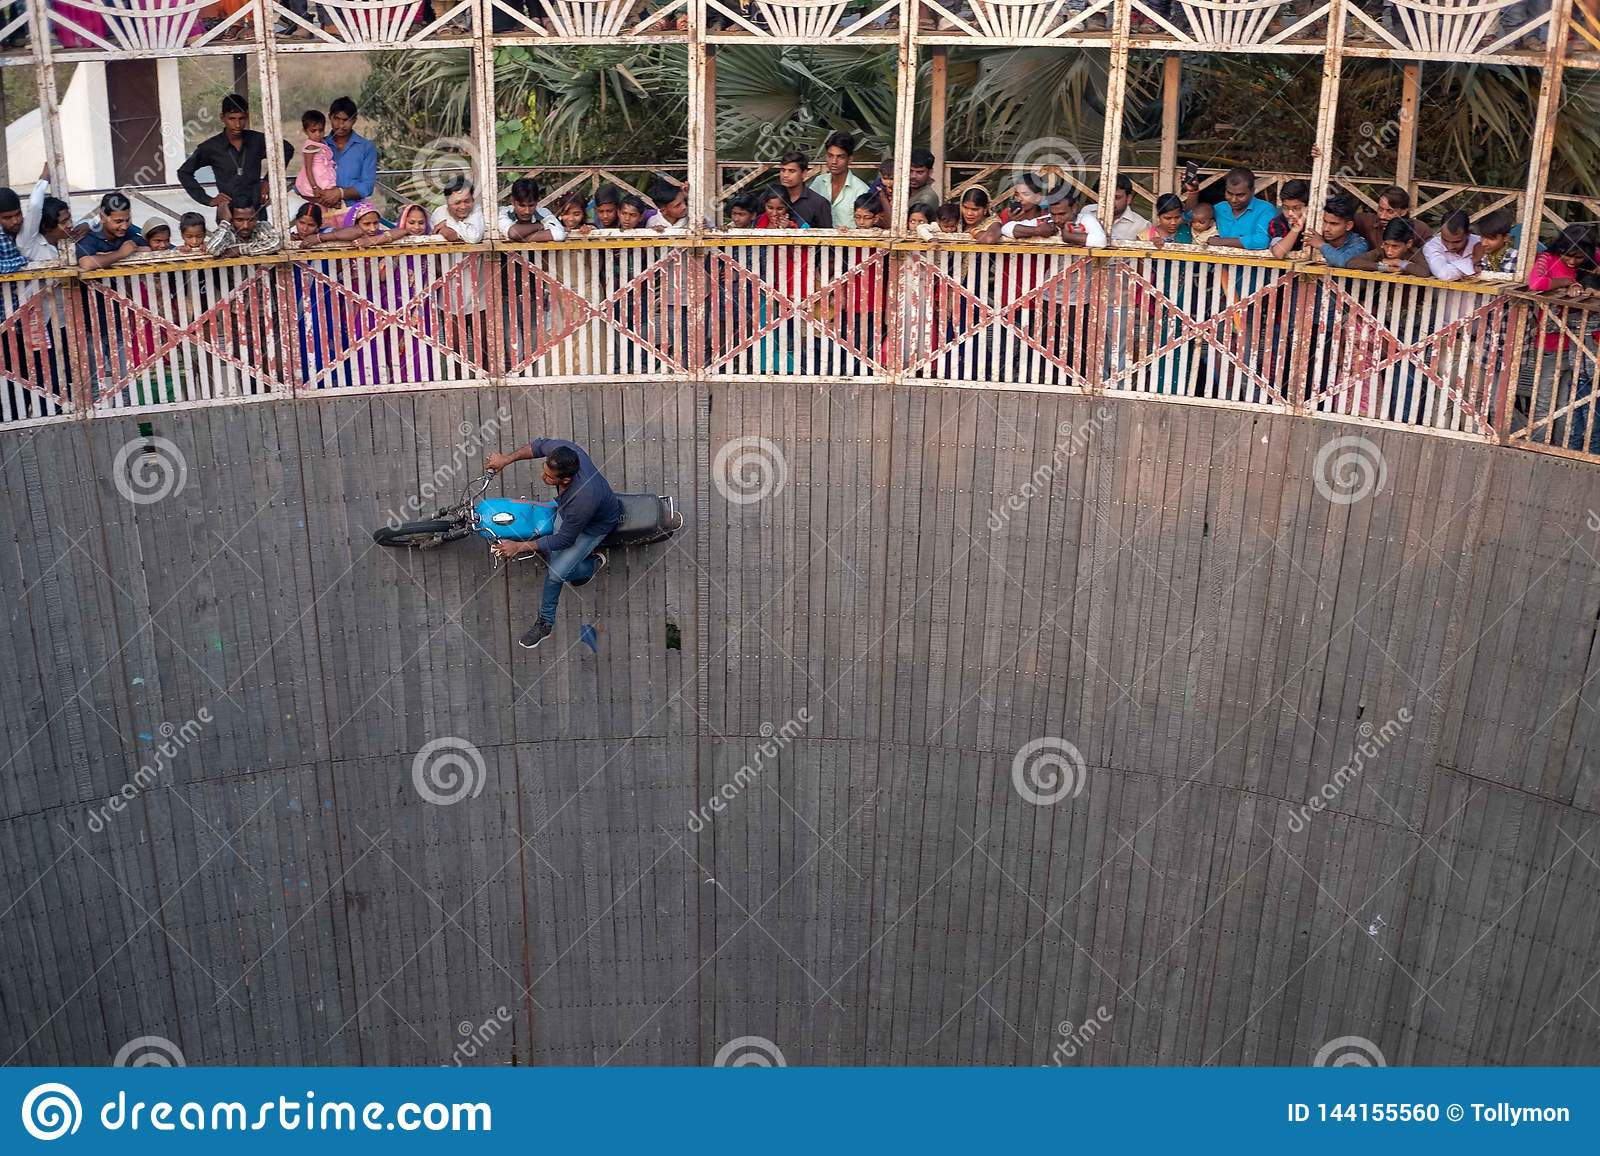 A man performs stunts while riding the wall of death at a festival surrounding NAN